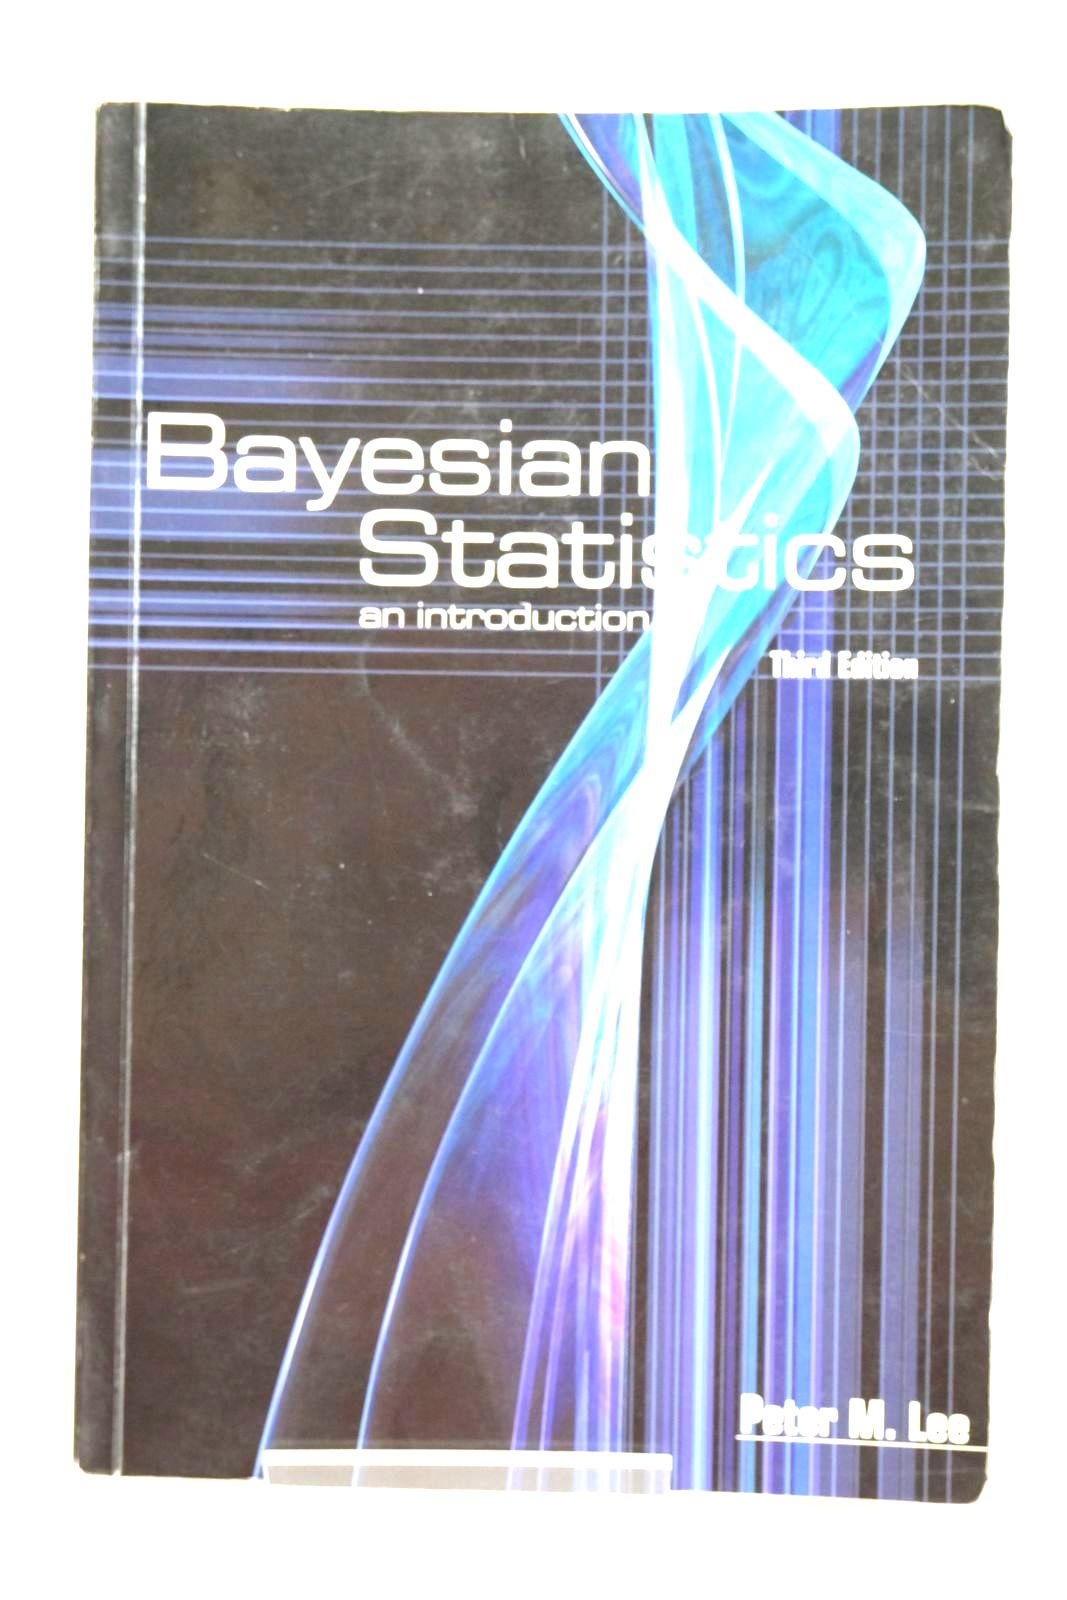 Photo of BAYESIAN STATISTICS AN INTRODUCTION written by Lee, Peter M. published by Arnold (STOCK CODE: 1319624)  for sale by Stella & Rose's Books